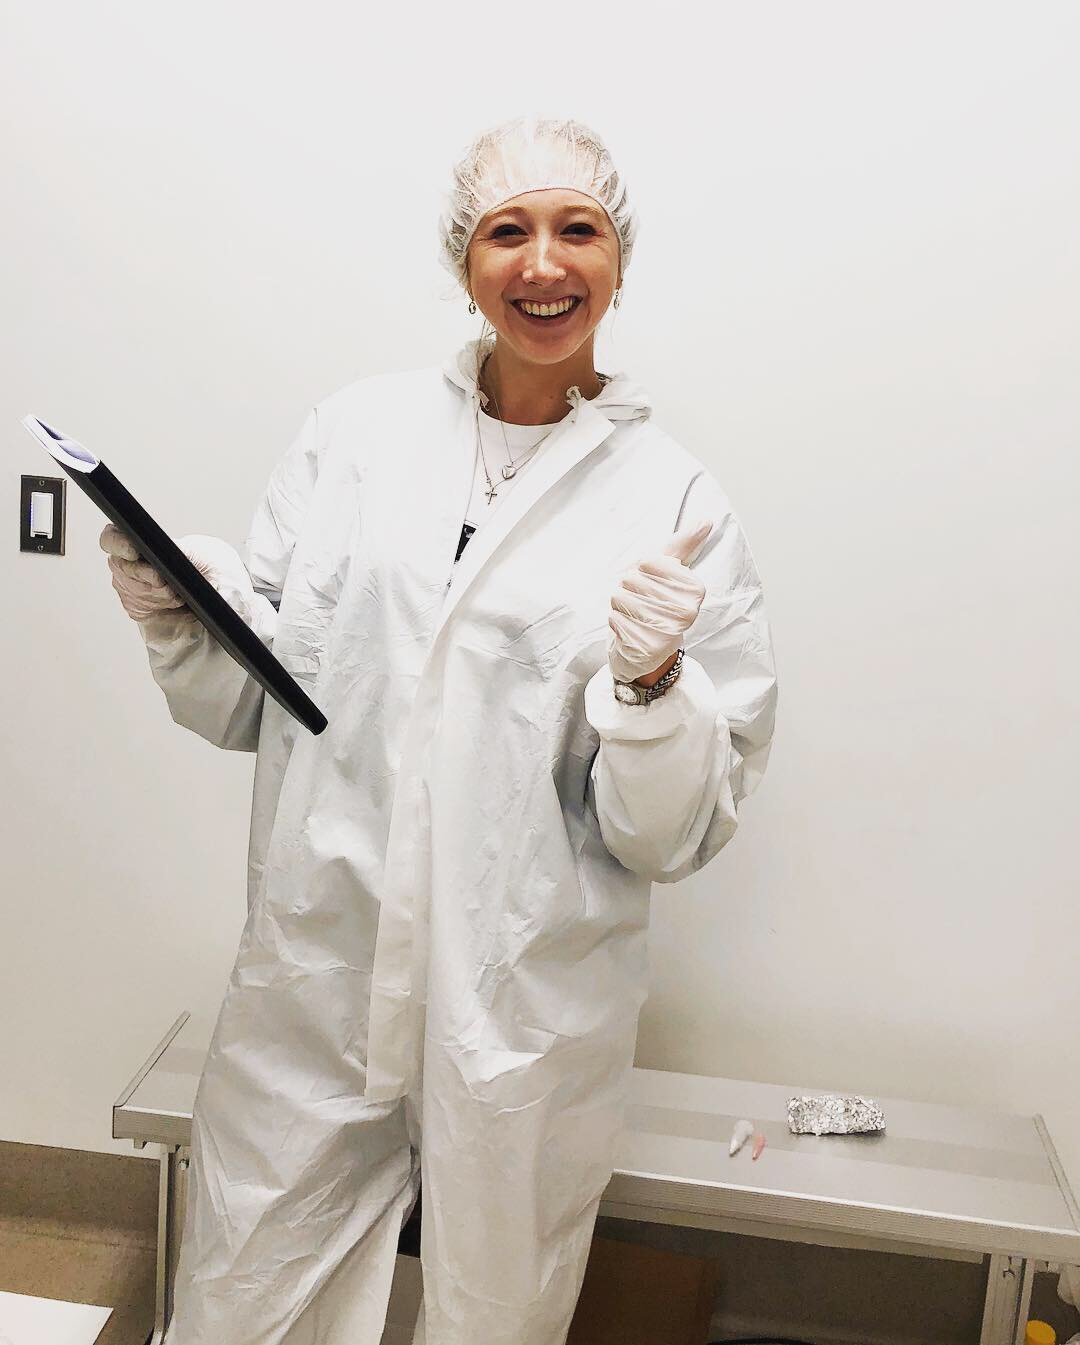 Bunny-suited up to repair our mass spectrometer in the clean room.